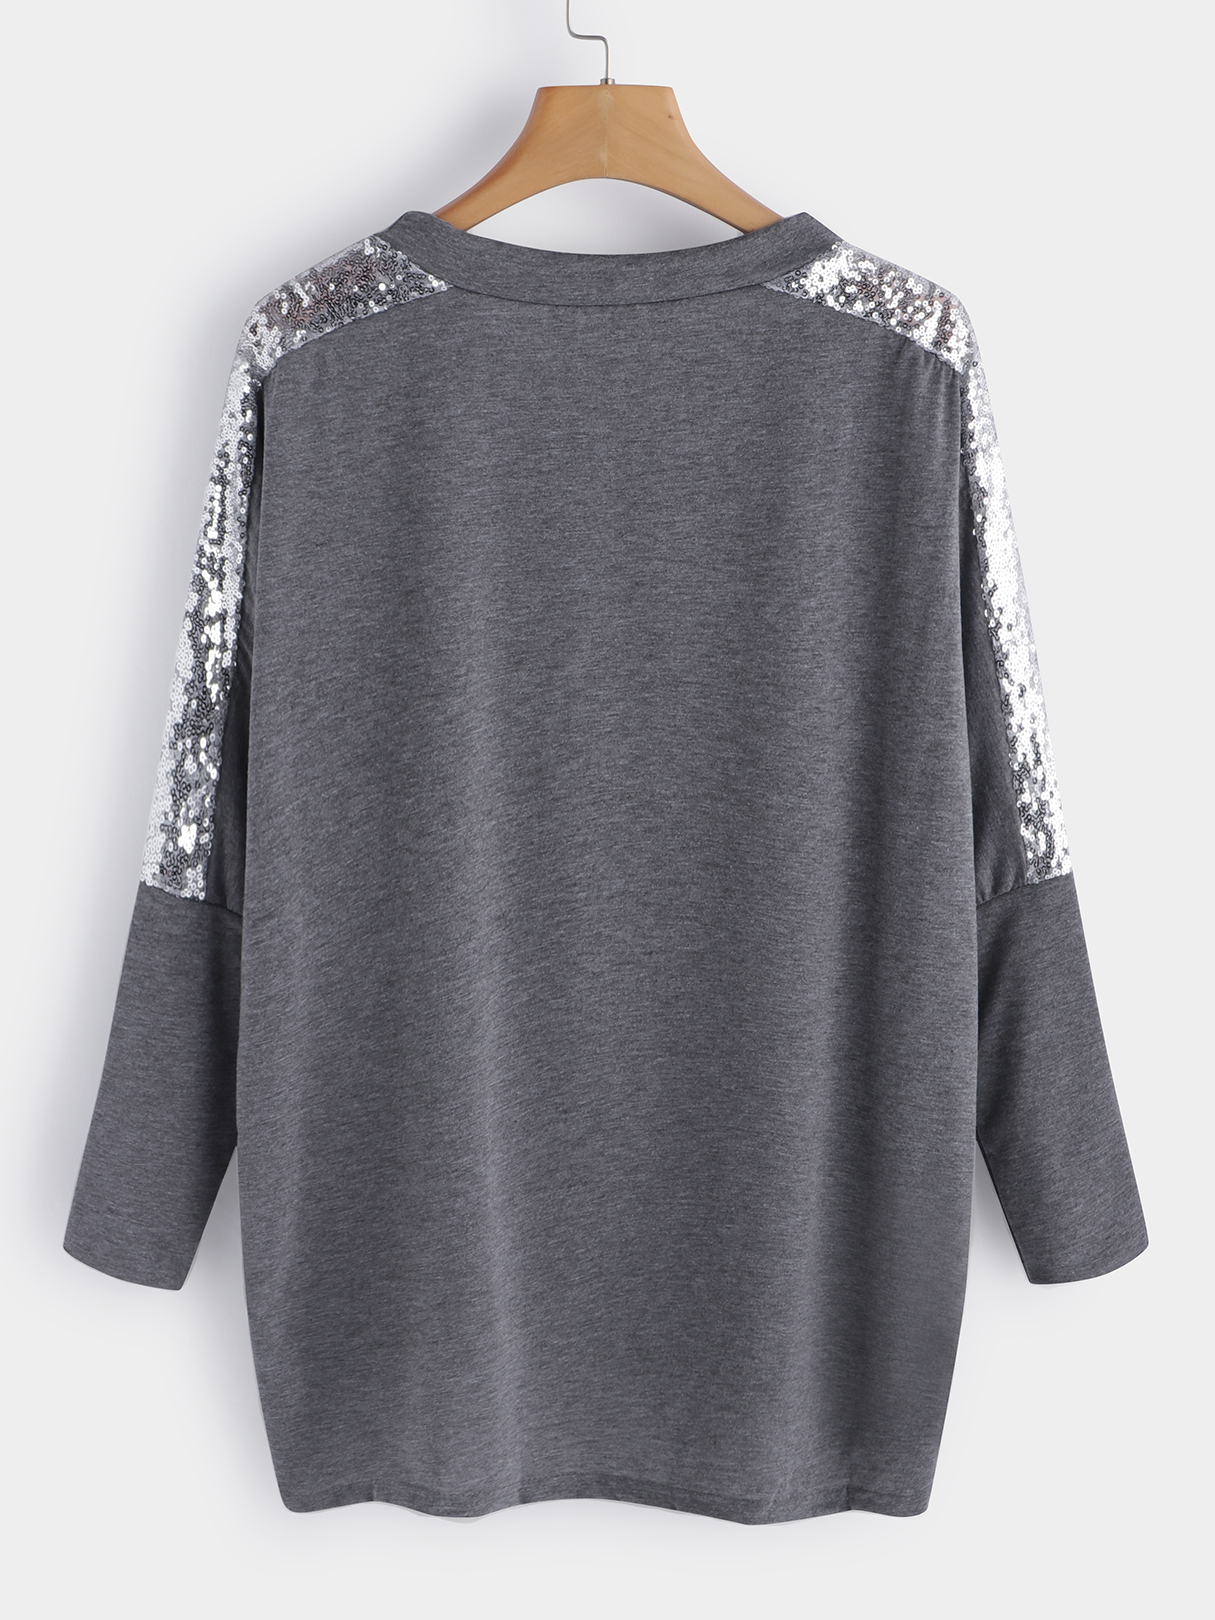 Grey Handmade Beaded Details Round Neck Long Sleeves T-shirts цена